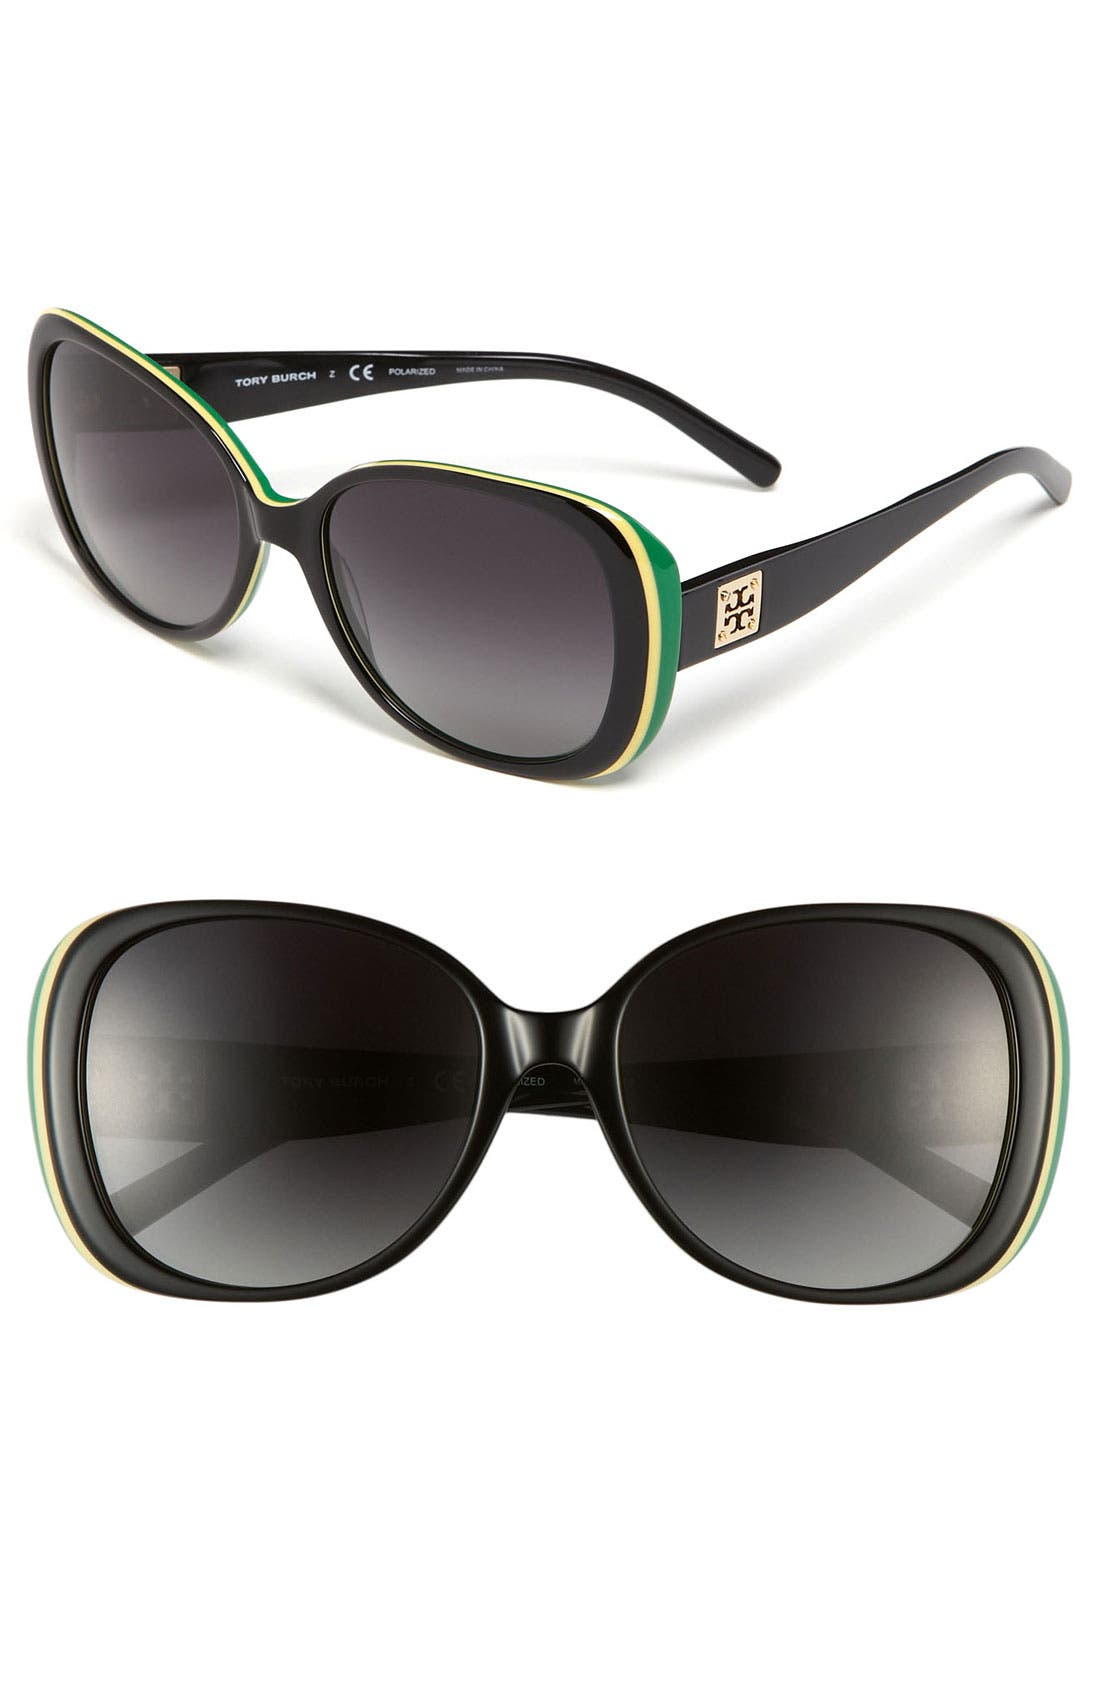 Alternate Image 1 Selected - Tory Burch 57mm Polarized Oversized Sunglasses